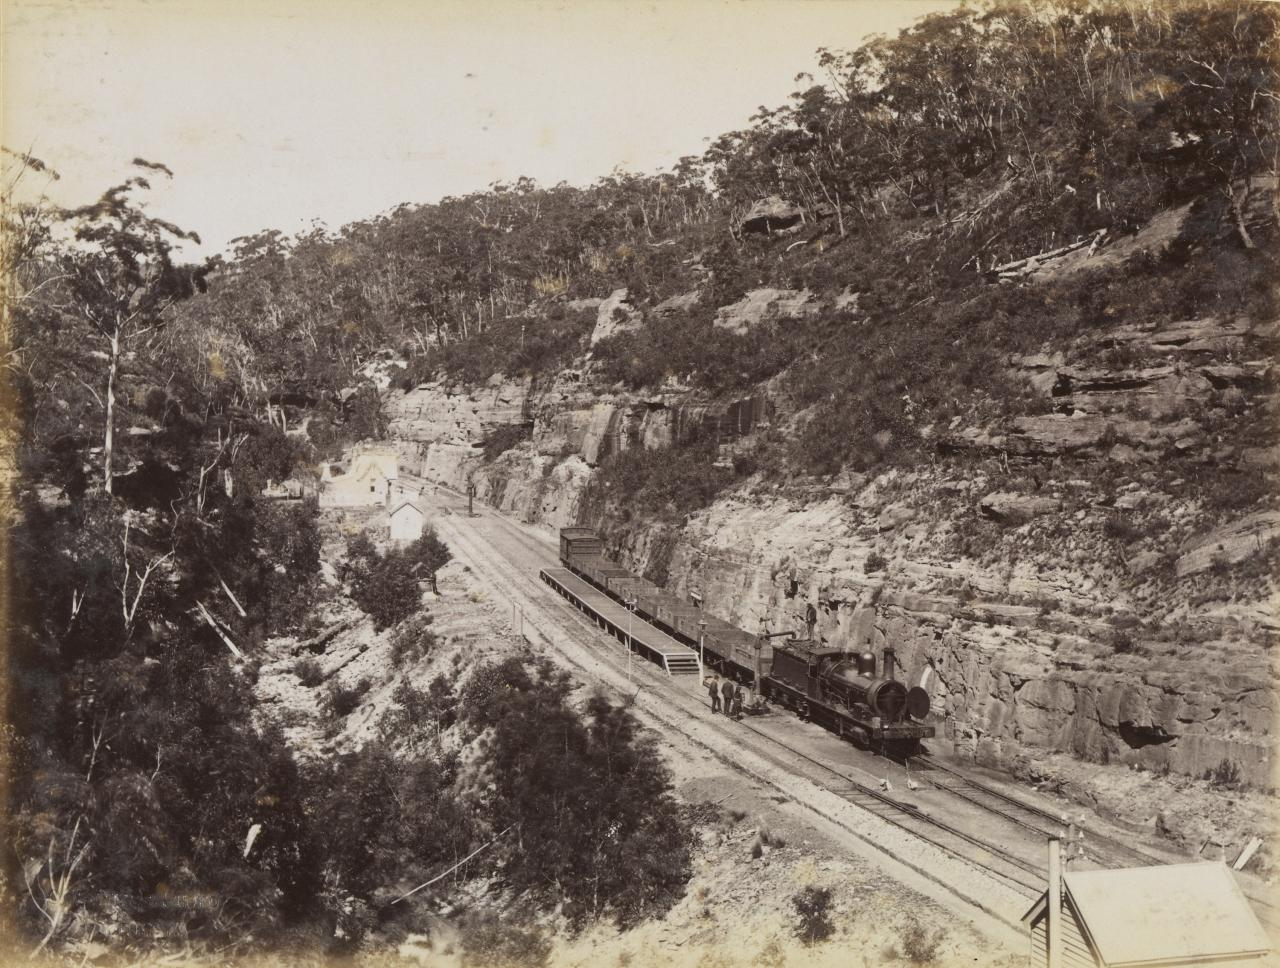 Zig Zag, Lithgow, New South Wales